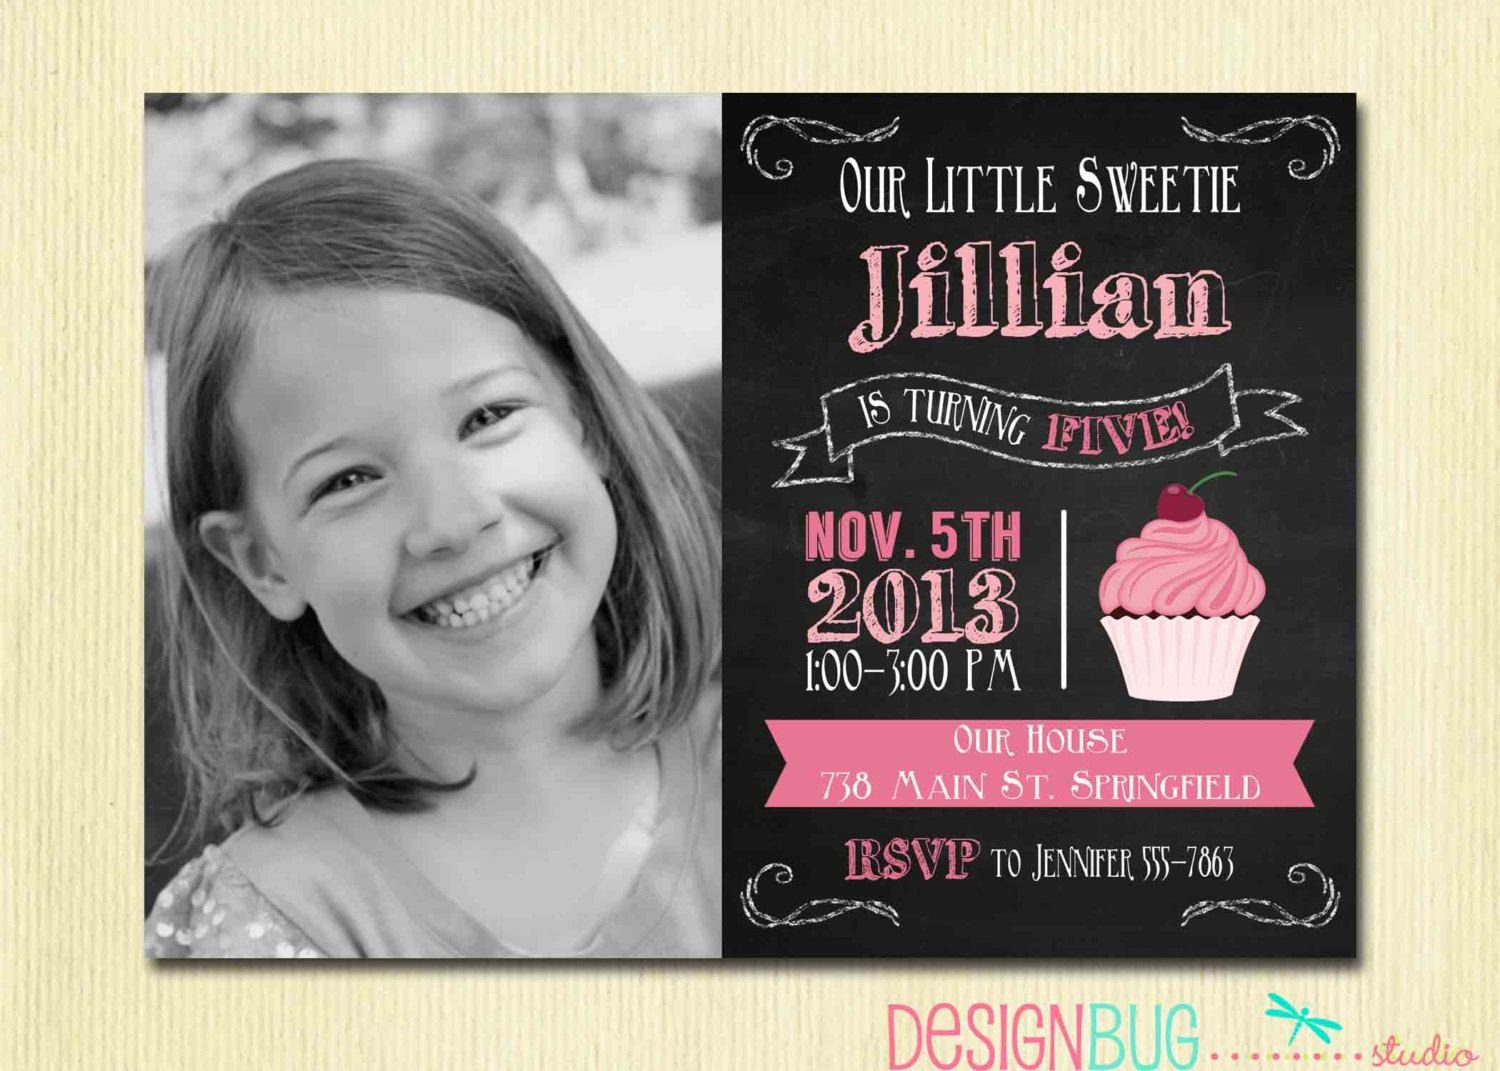 4 year old birthday invitation ; 65376c05e5941776de6a49852ca600c0